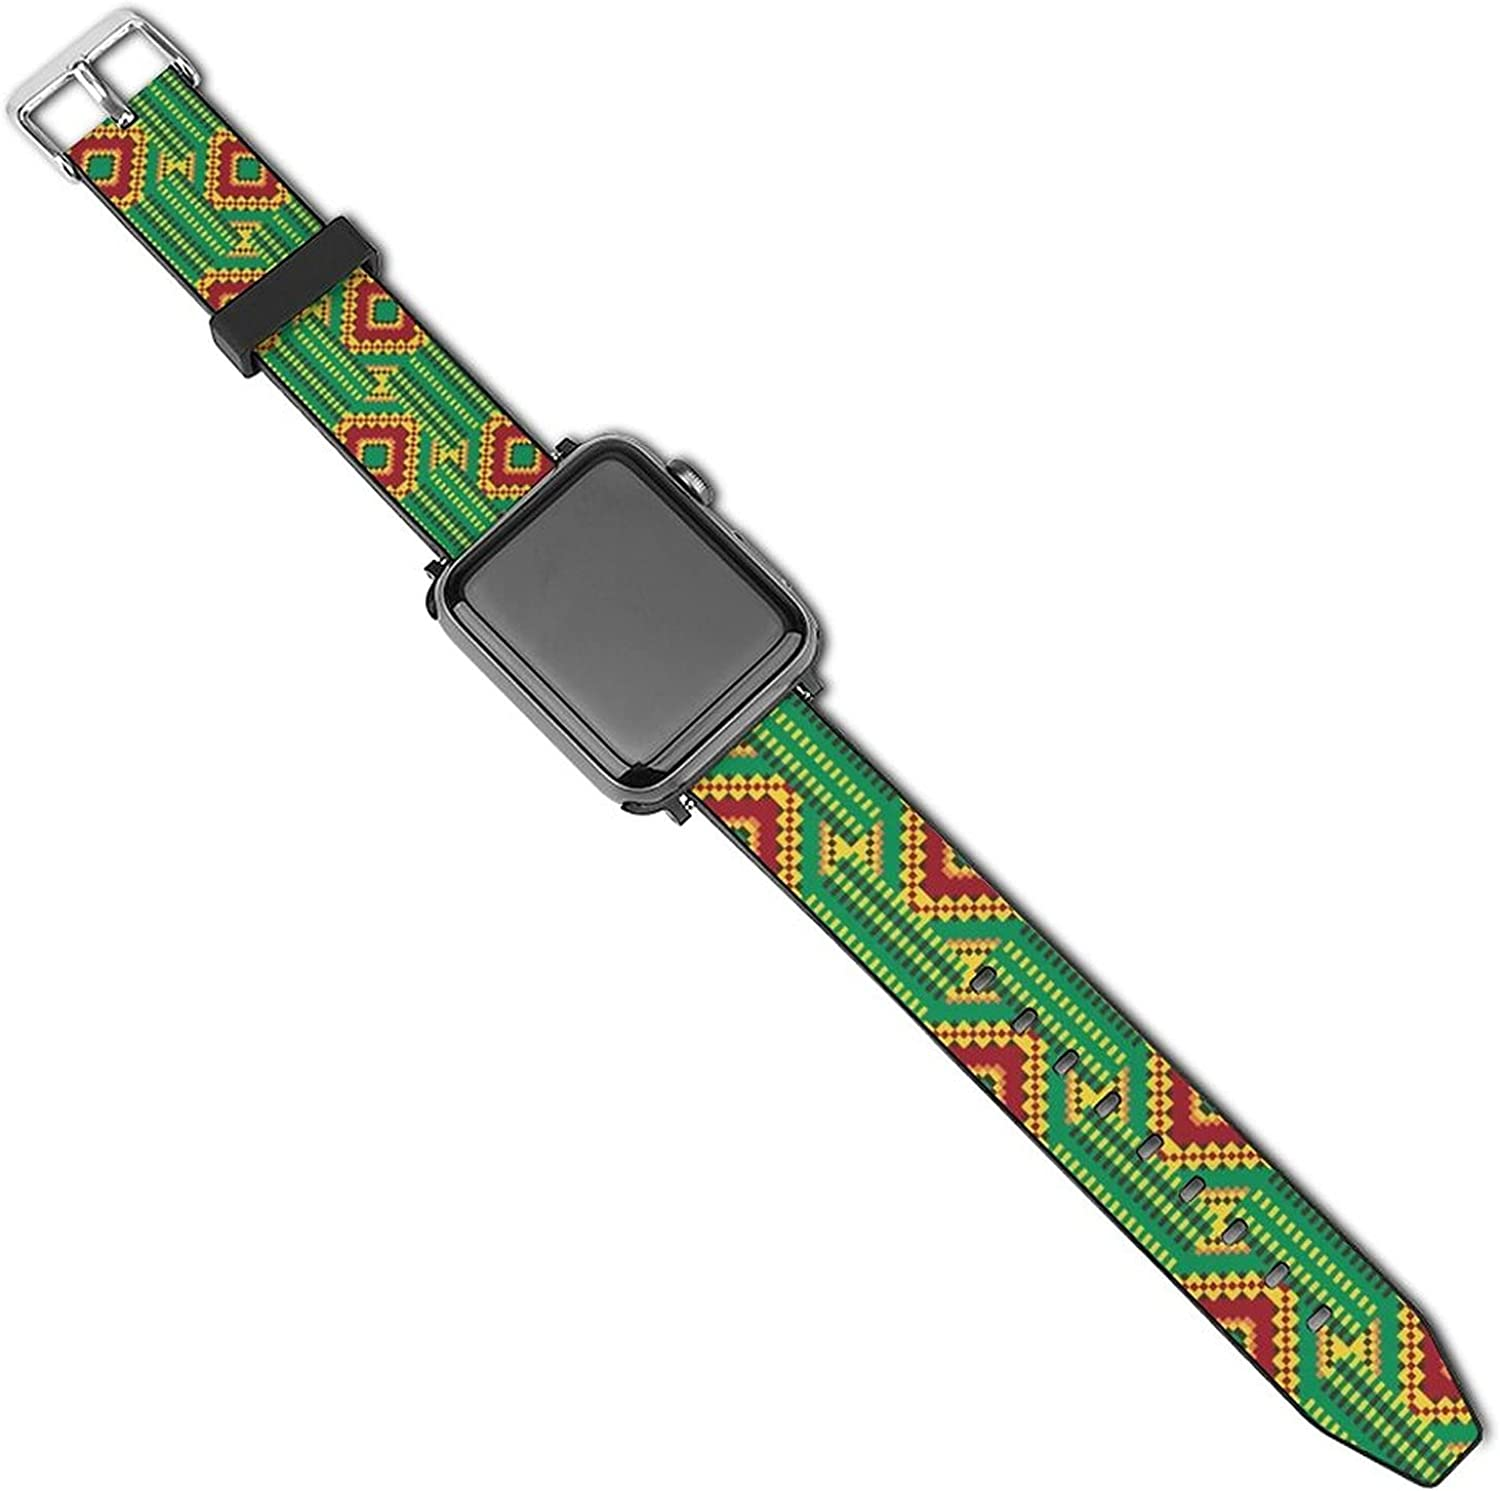 Stretchy Strap Loop Compatible with Apple Watch Bands , Ethnic Kente Tribal Print GreenAdjustable Sport Leather Women Men Wristband Compatible with iWatch Series SE/6/5/4/3/2/1